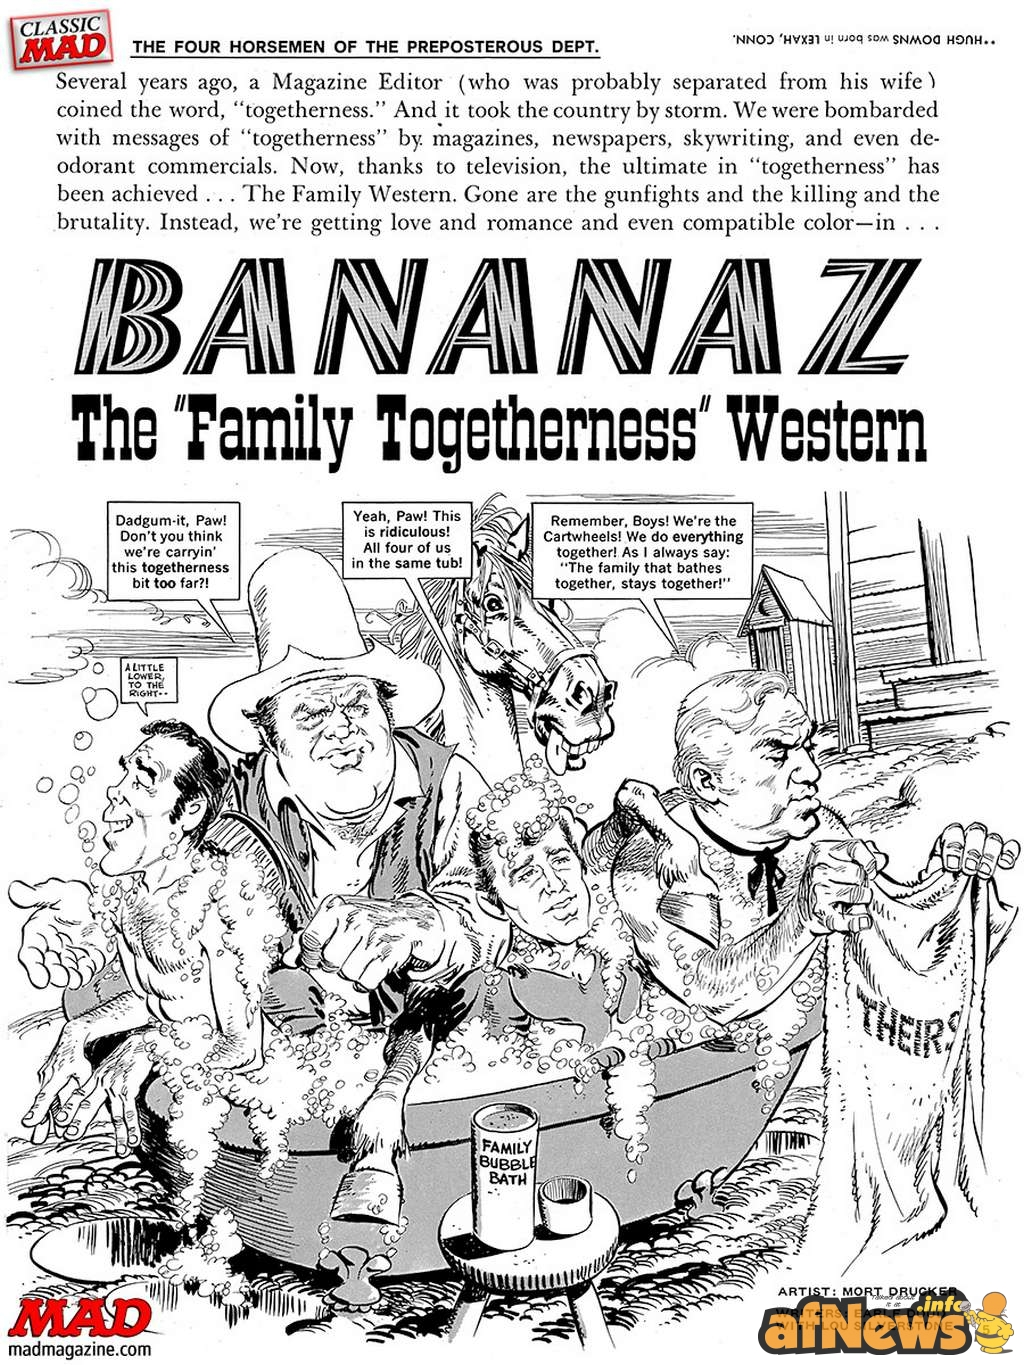 MAD-Magazine-Bananaz-1